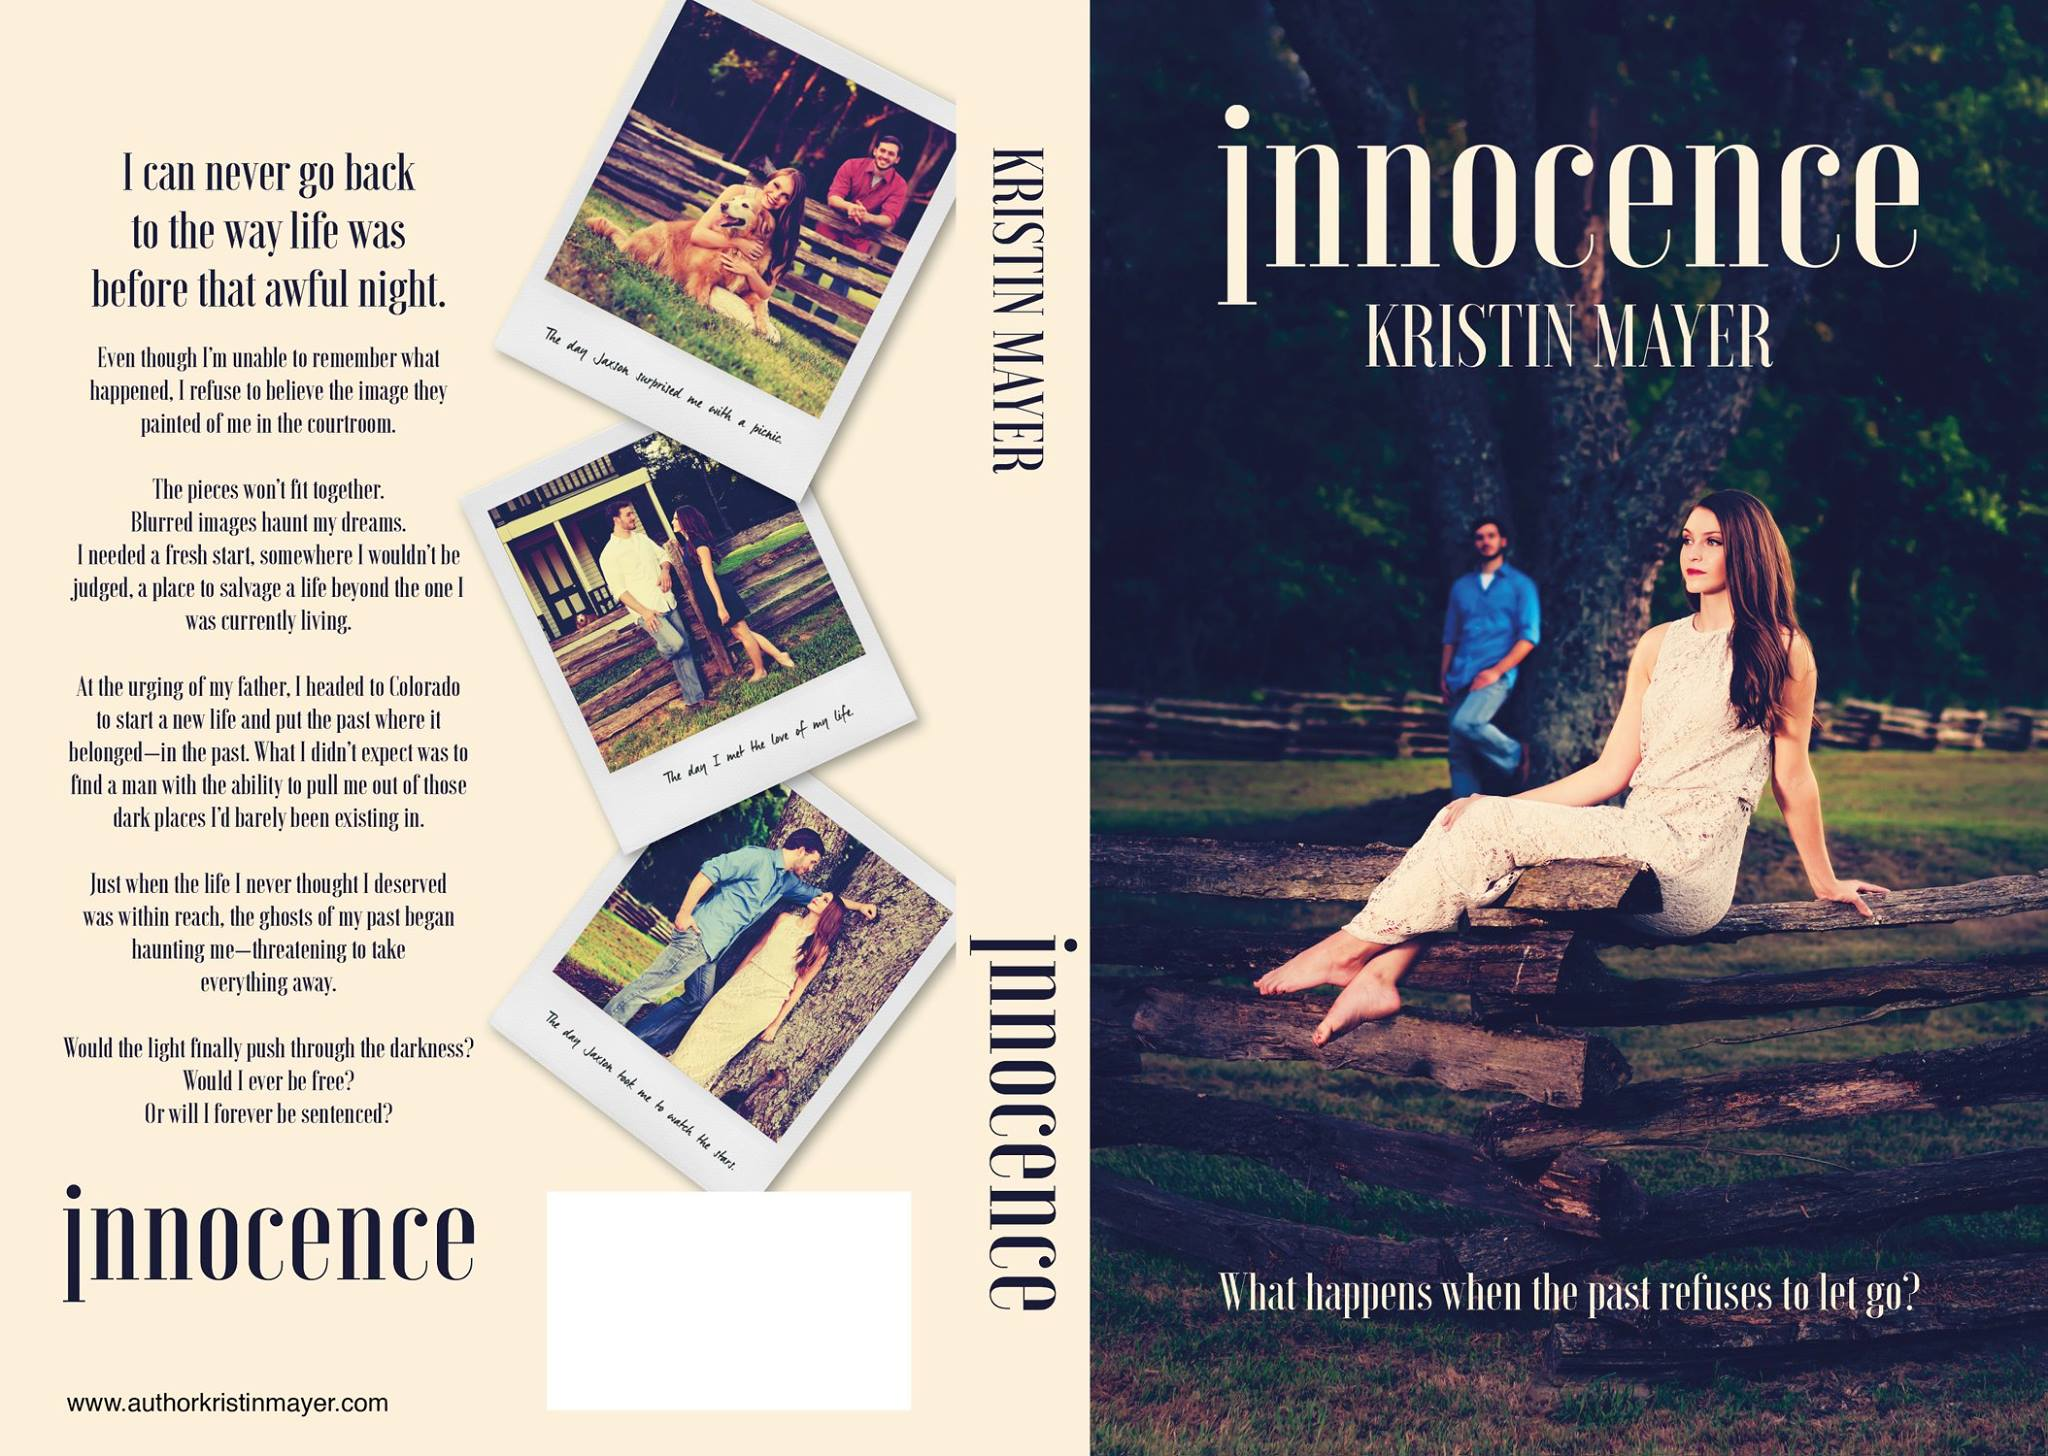 April Park Photography Northwest Arkansas Photographer Rogers Innocence Book Cover Kristin Mayer